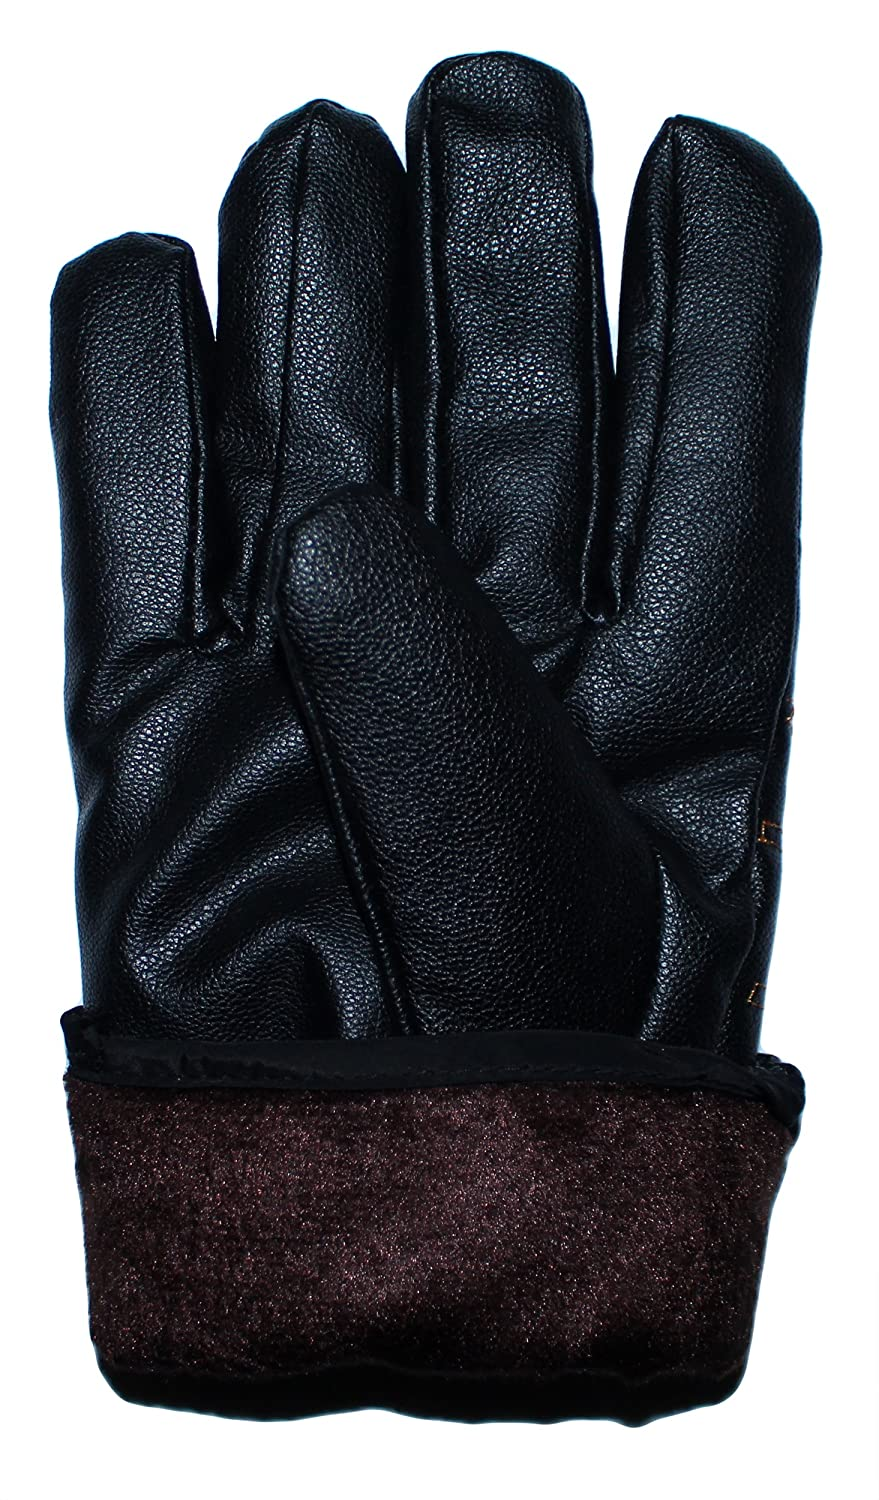 GILBINS Mens 4 Pack Touchscreen Texting Cold Weather Faux Leather Warm Fleece Lined Driving Gloves